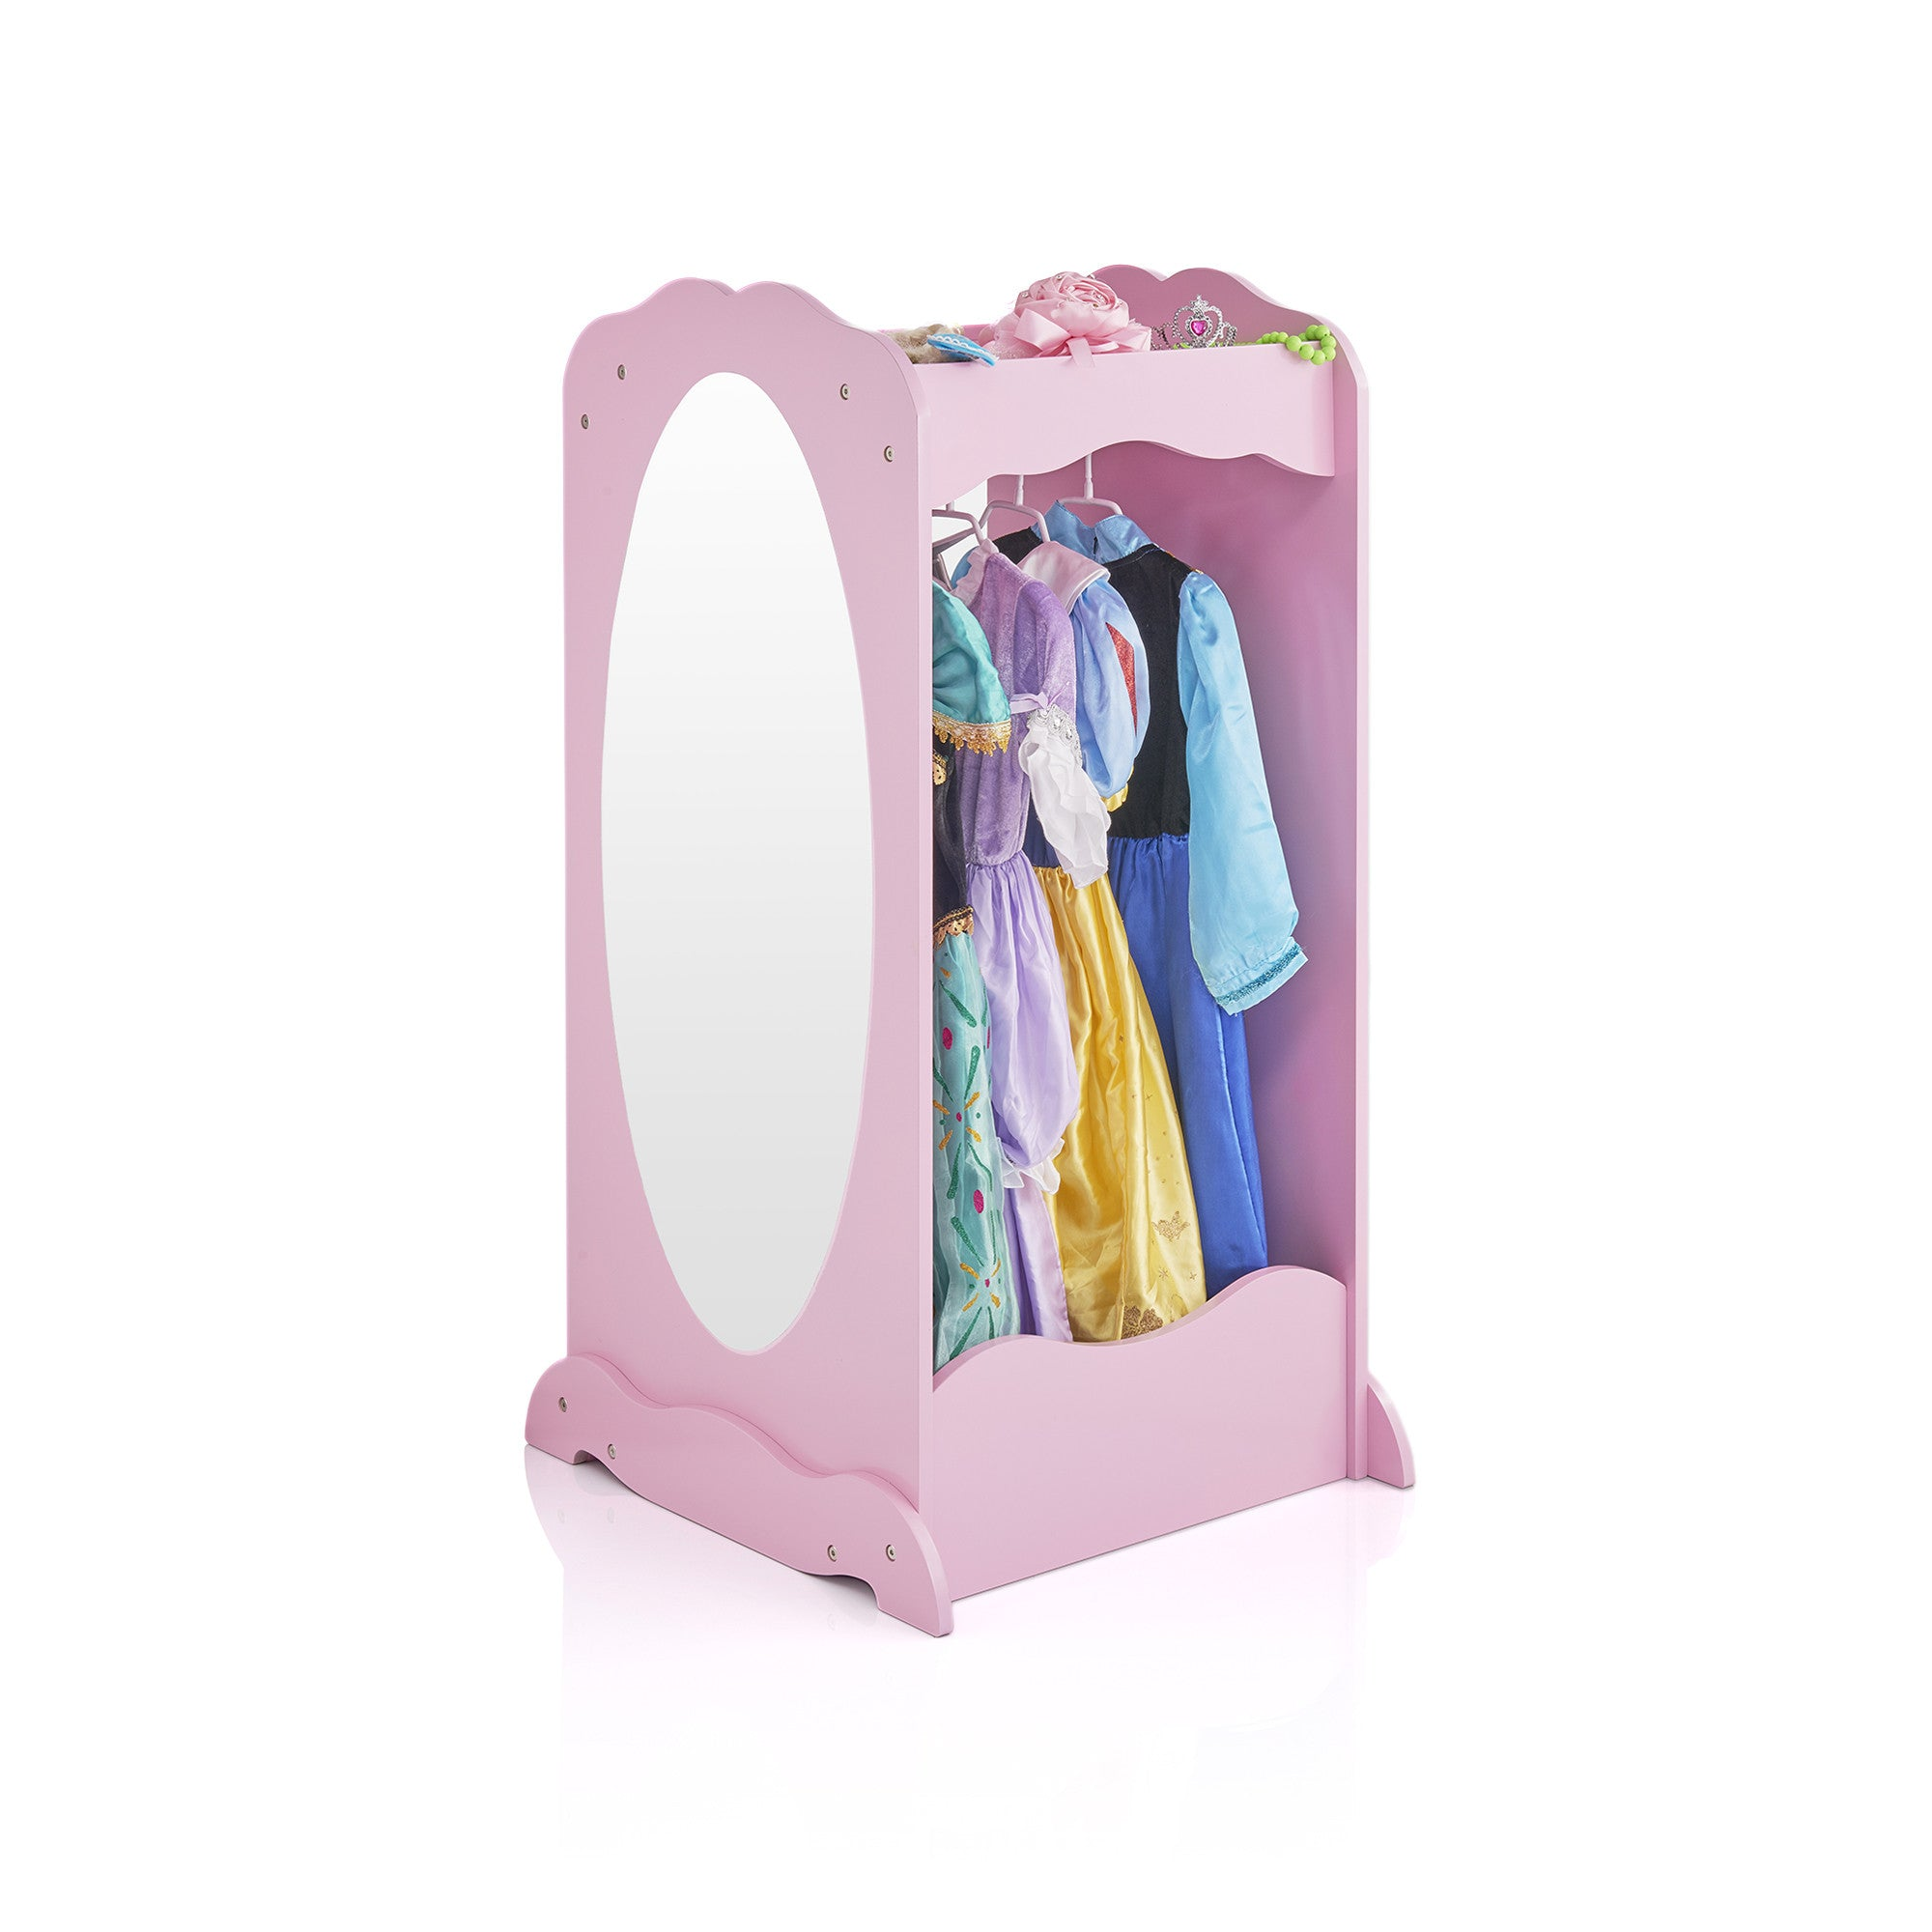 Guidecraft Dress Up Cubby Center – Pink G99203